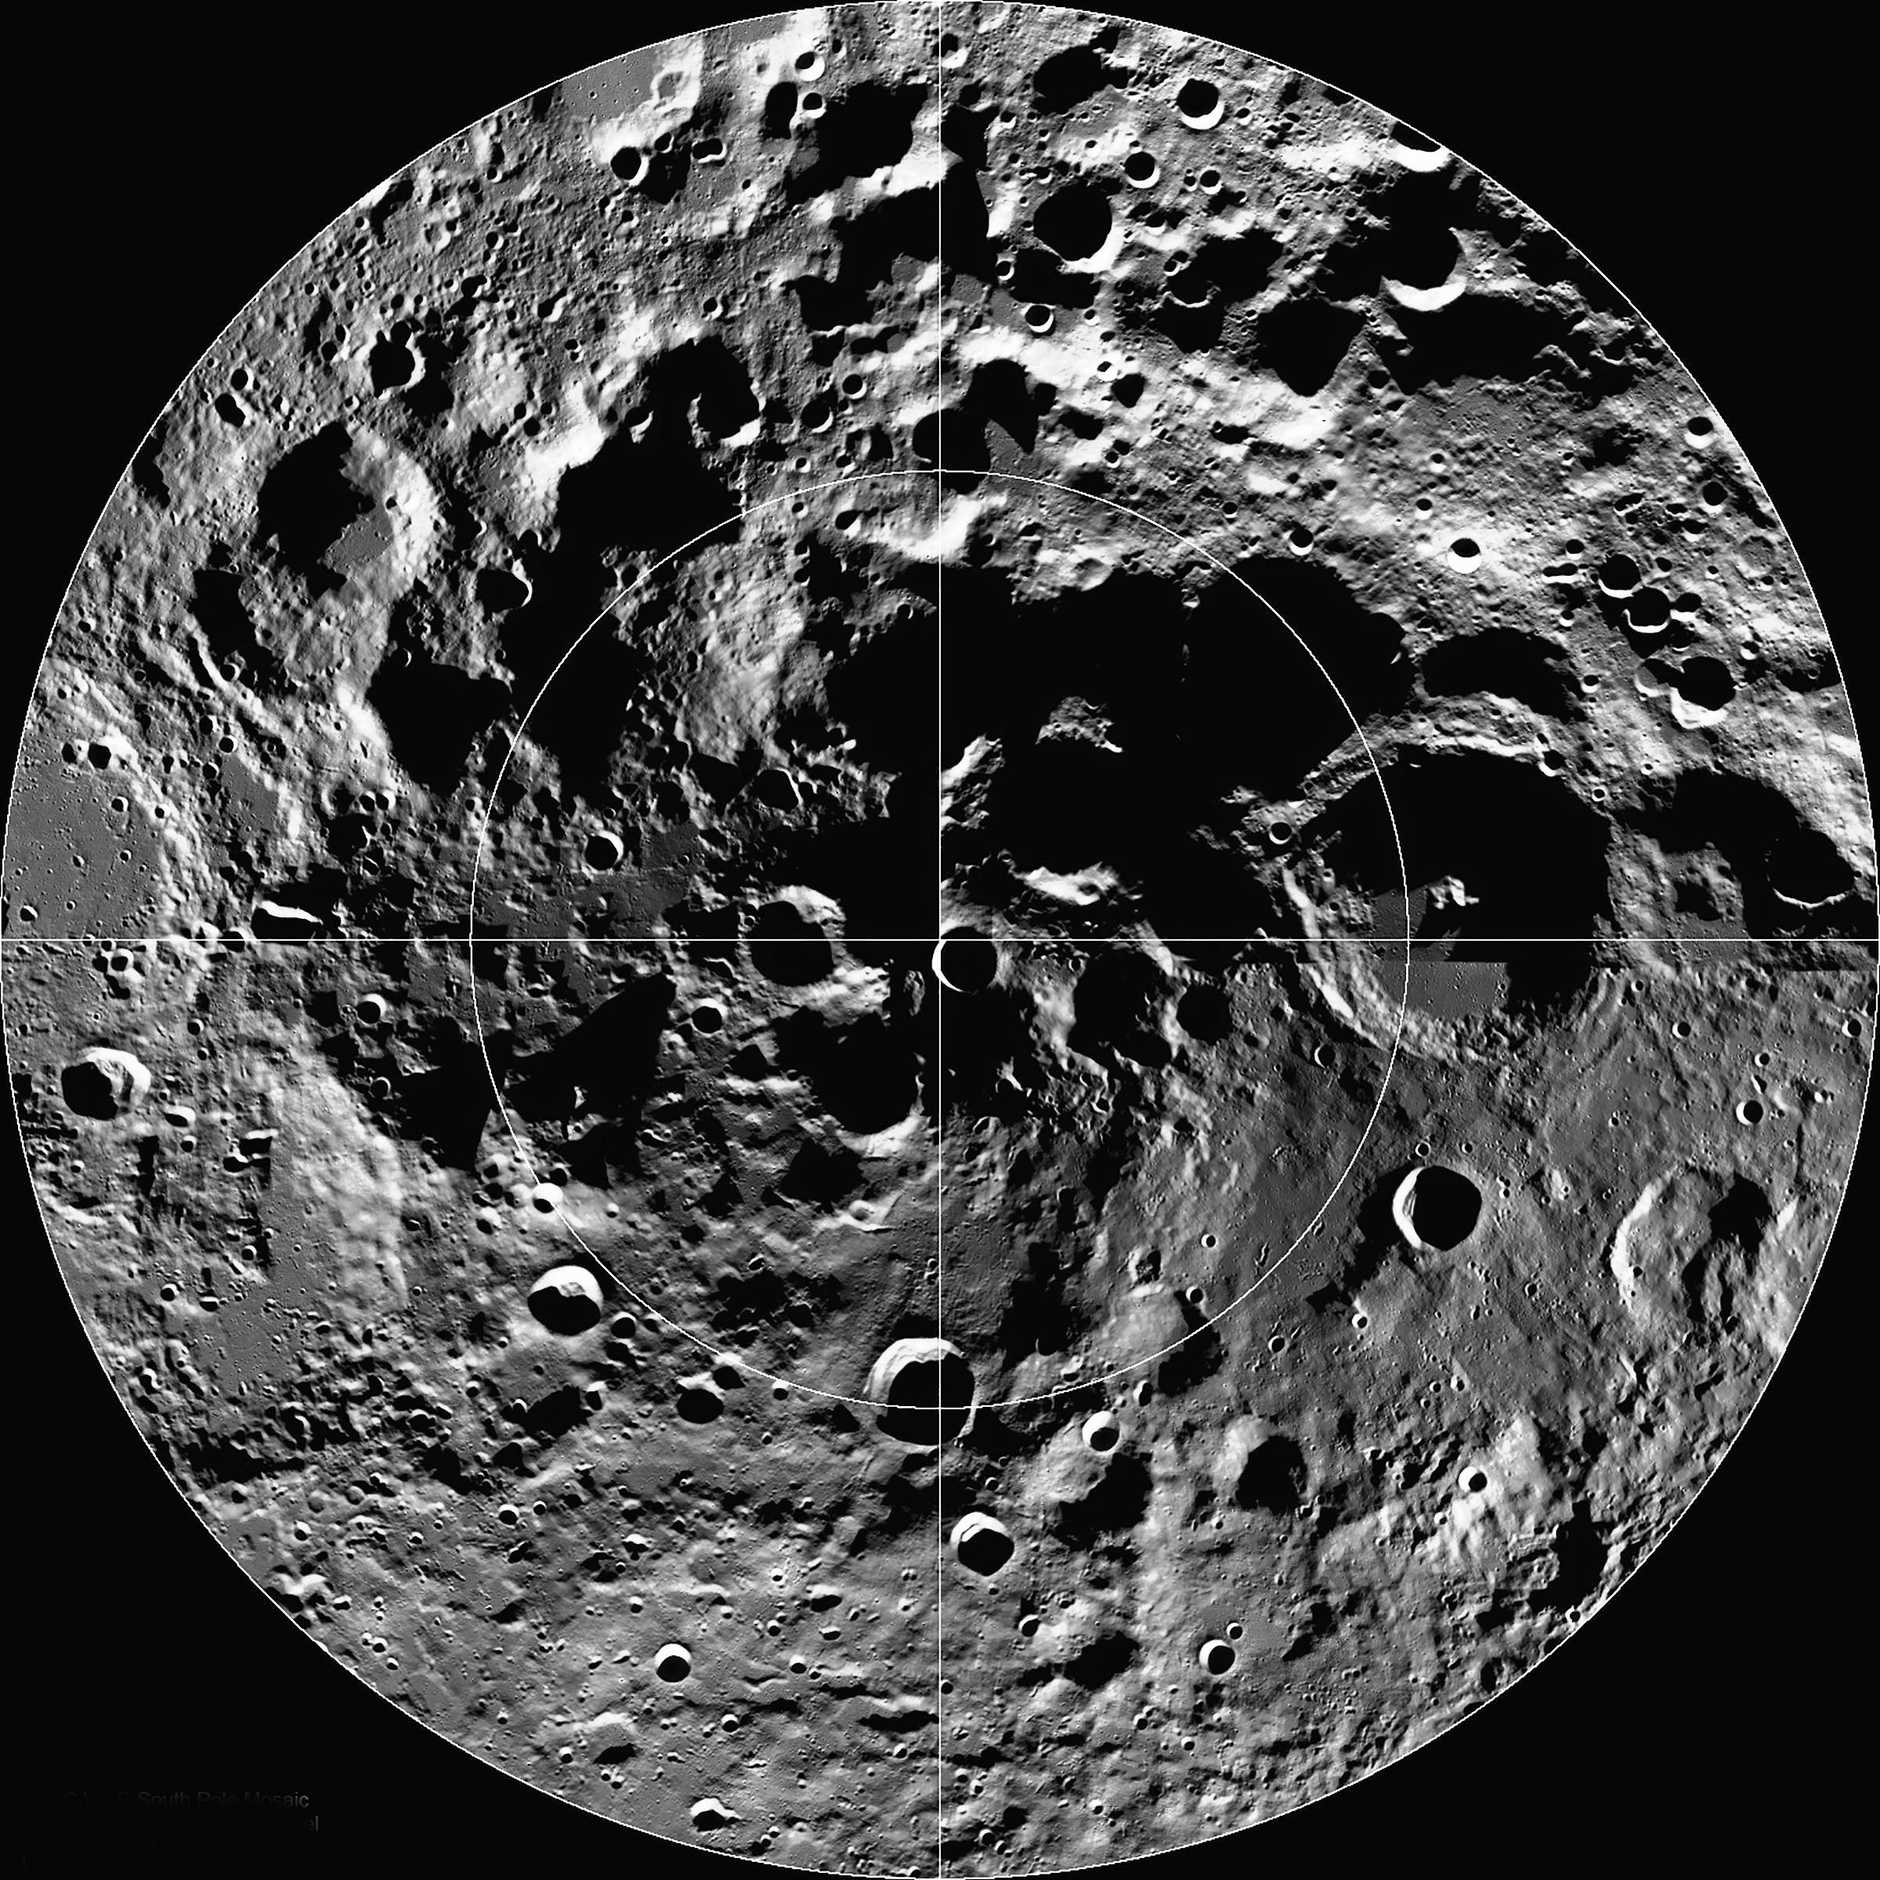 LUNARSCAPE: Frozen water-ice could be at the bottom of these deep craters at the Moon's north and south poles.